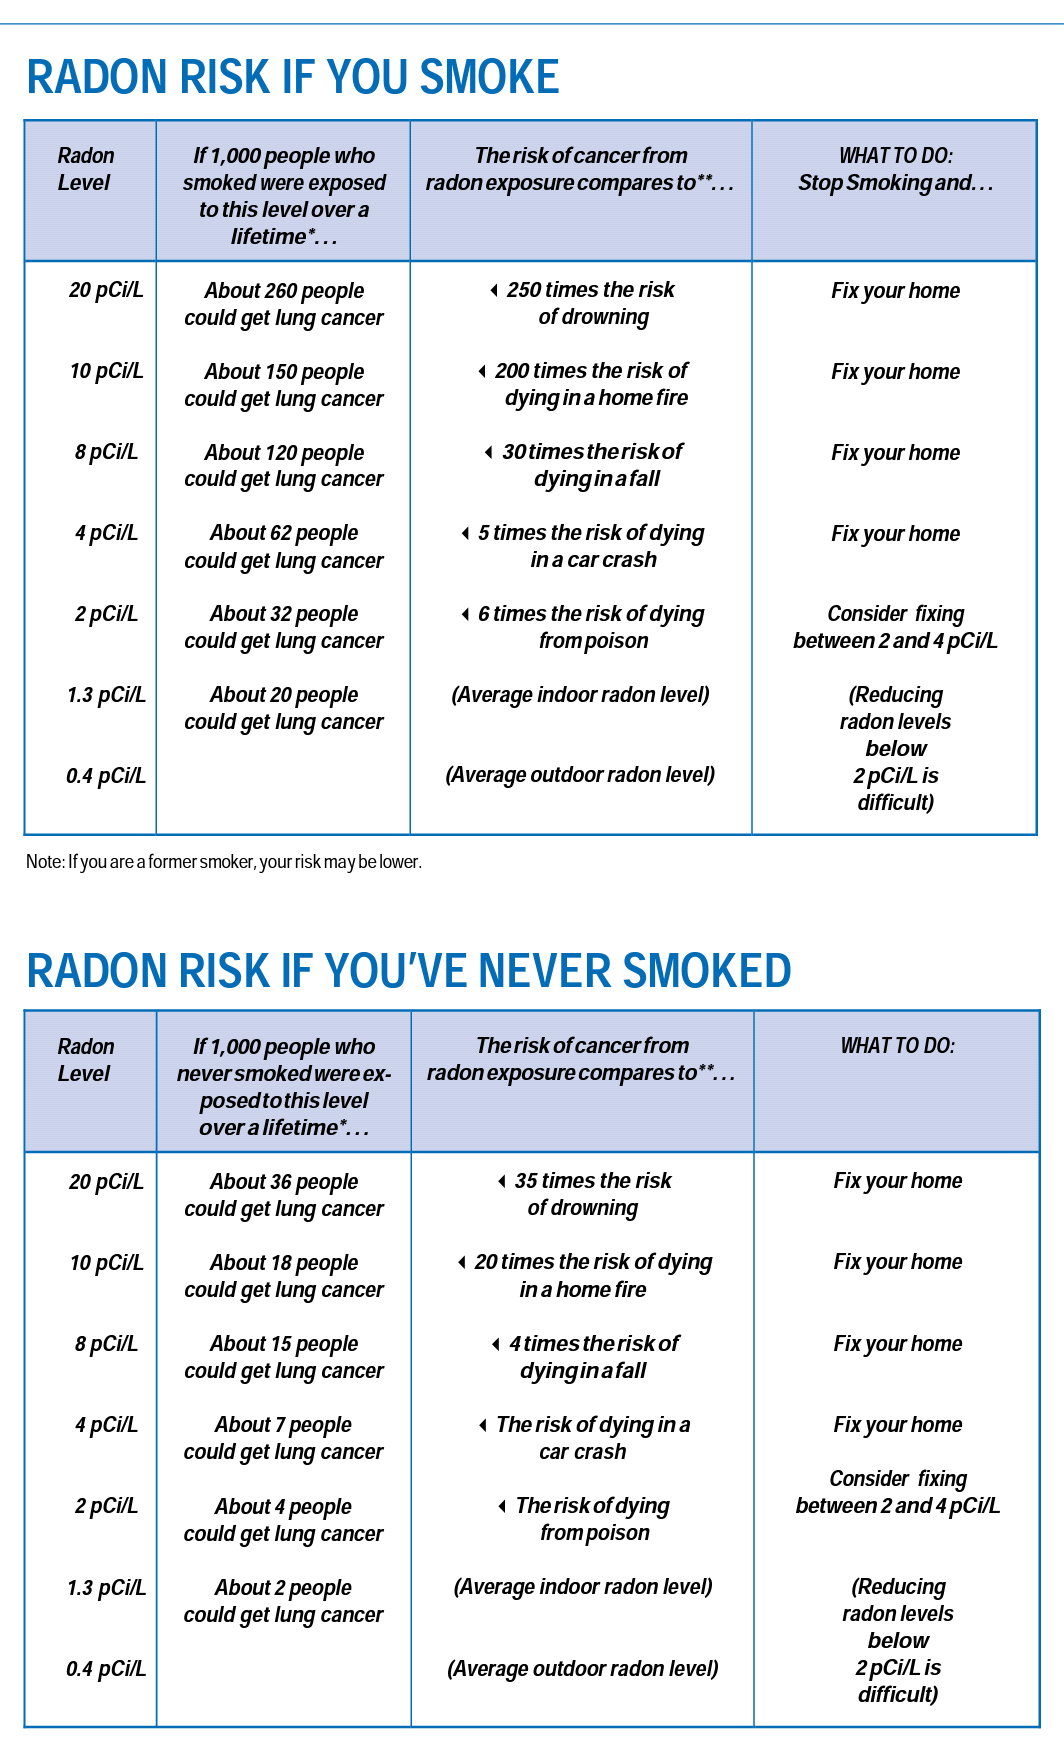 January is National Radon Action Month. Radon is the leading cause of lung cancer deaths among nonsmokers in America and claims the lives of about 21,000 Americans each year. Call me today to test you home for only $120